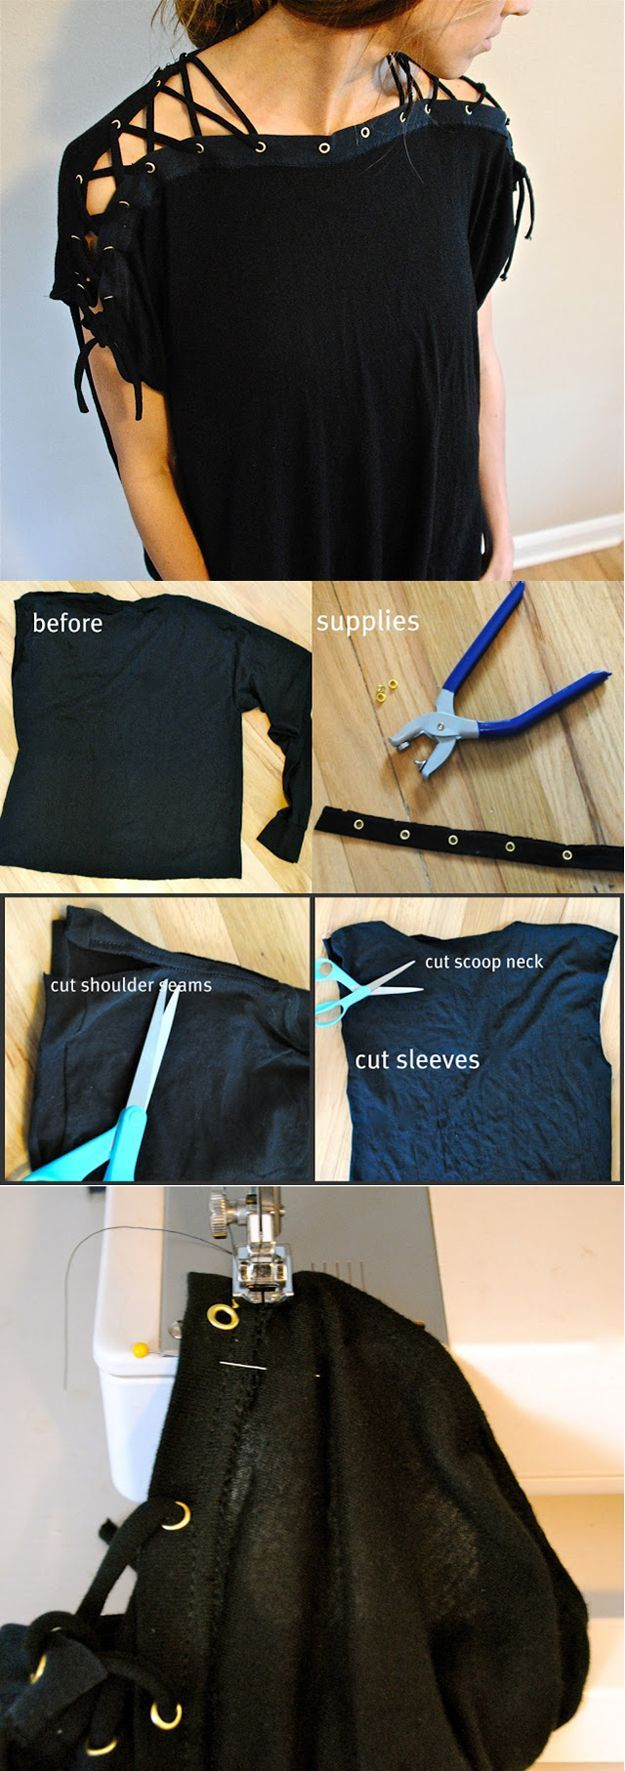 Laced Up Collar Sleeves DIY | Hot Top Design Tutorial by DIY Ready at diyready.com/diy-clothes-sewing-blouses-tutorial/: